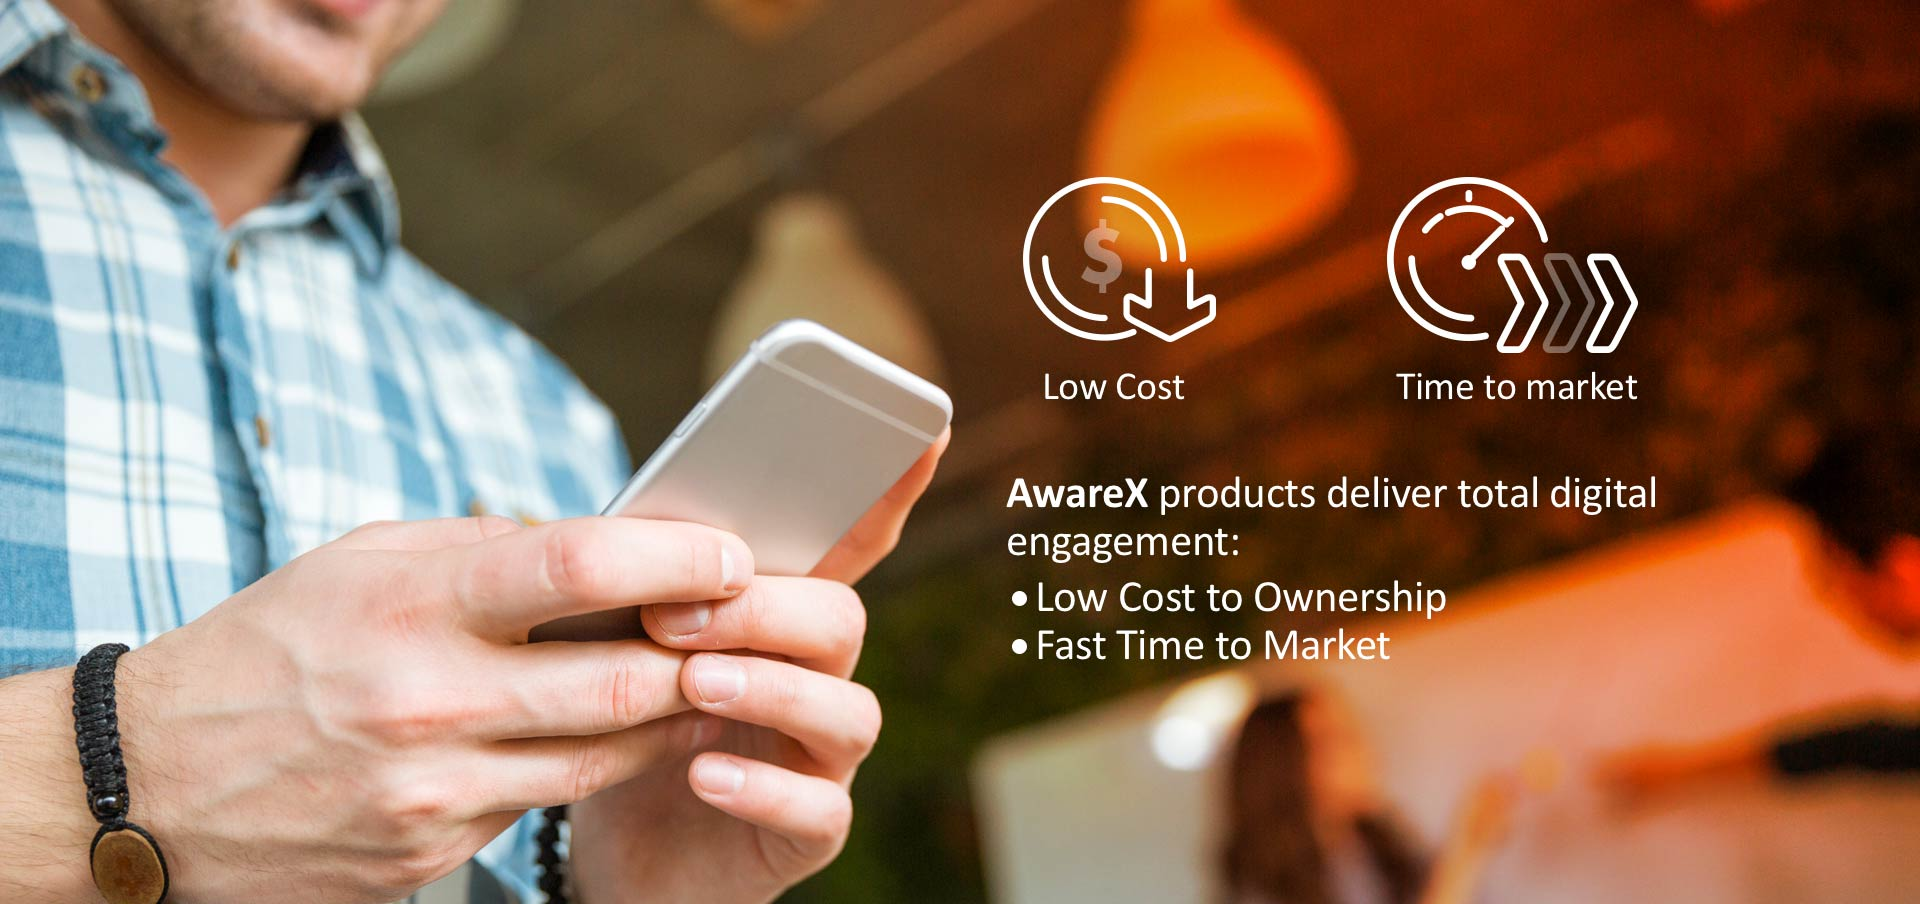 AwareX products deliver total digital engagement